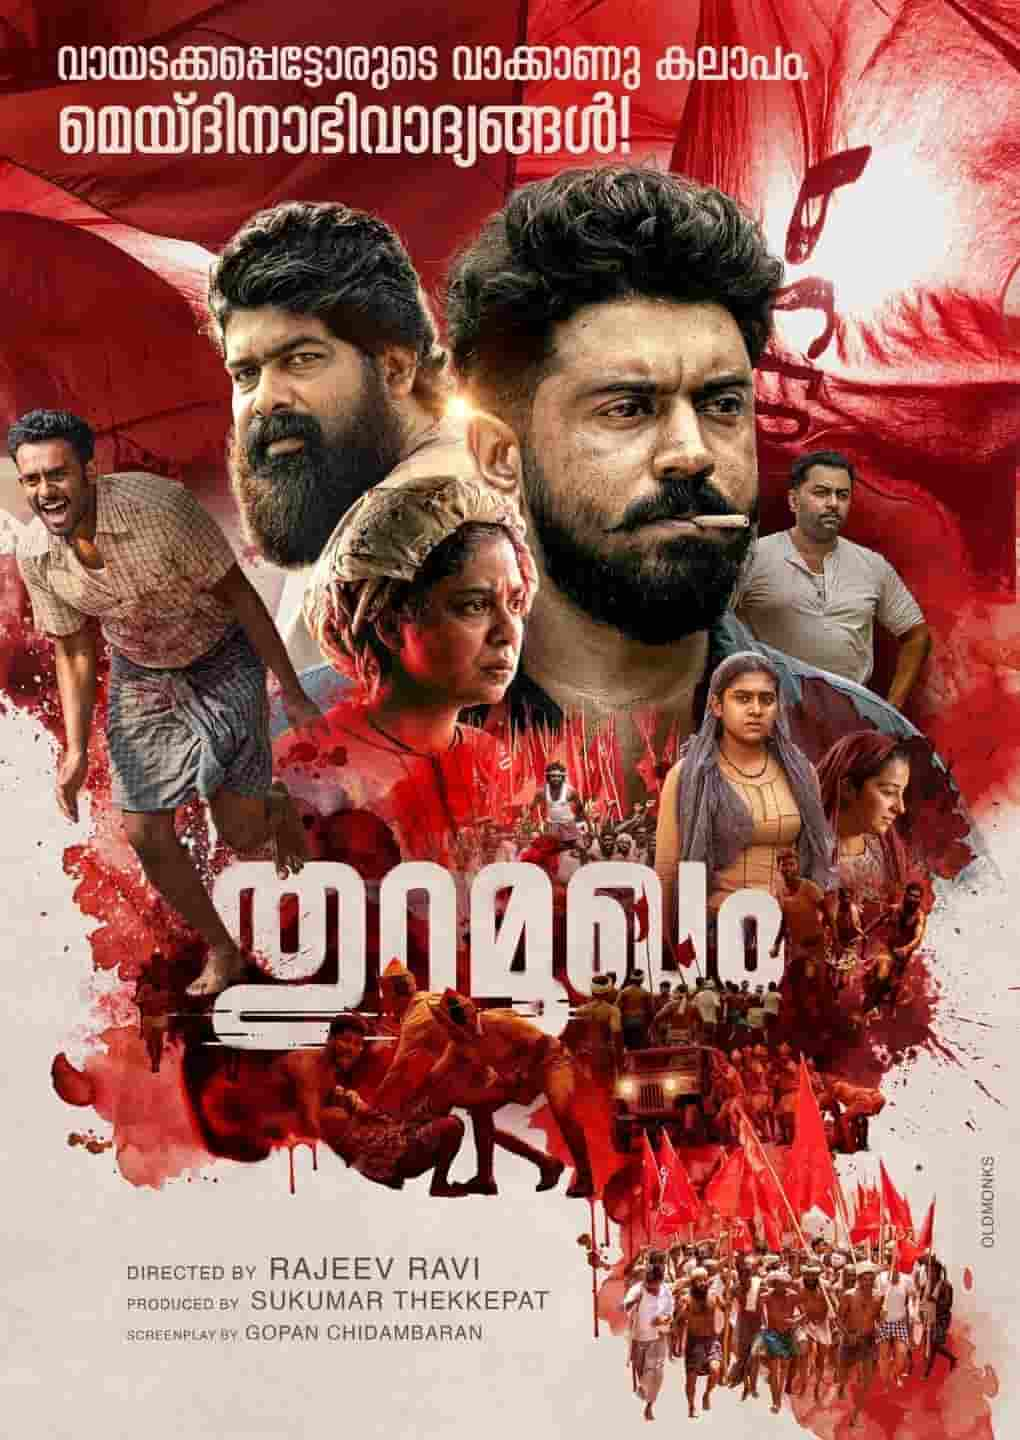 Download the harbour malayalam movie online free